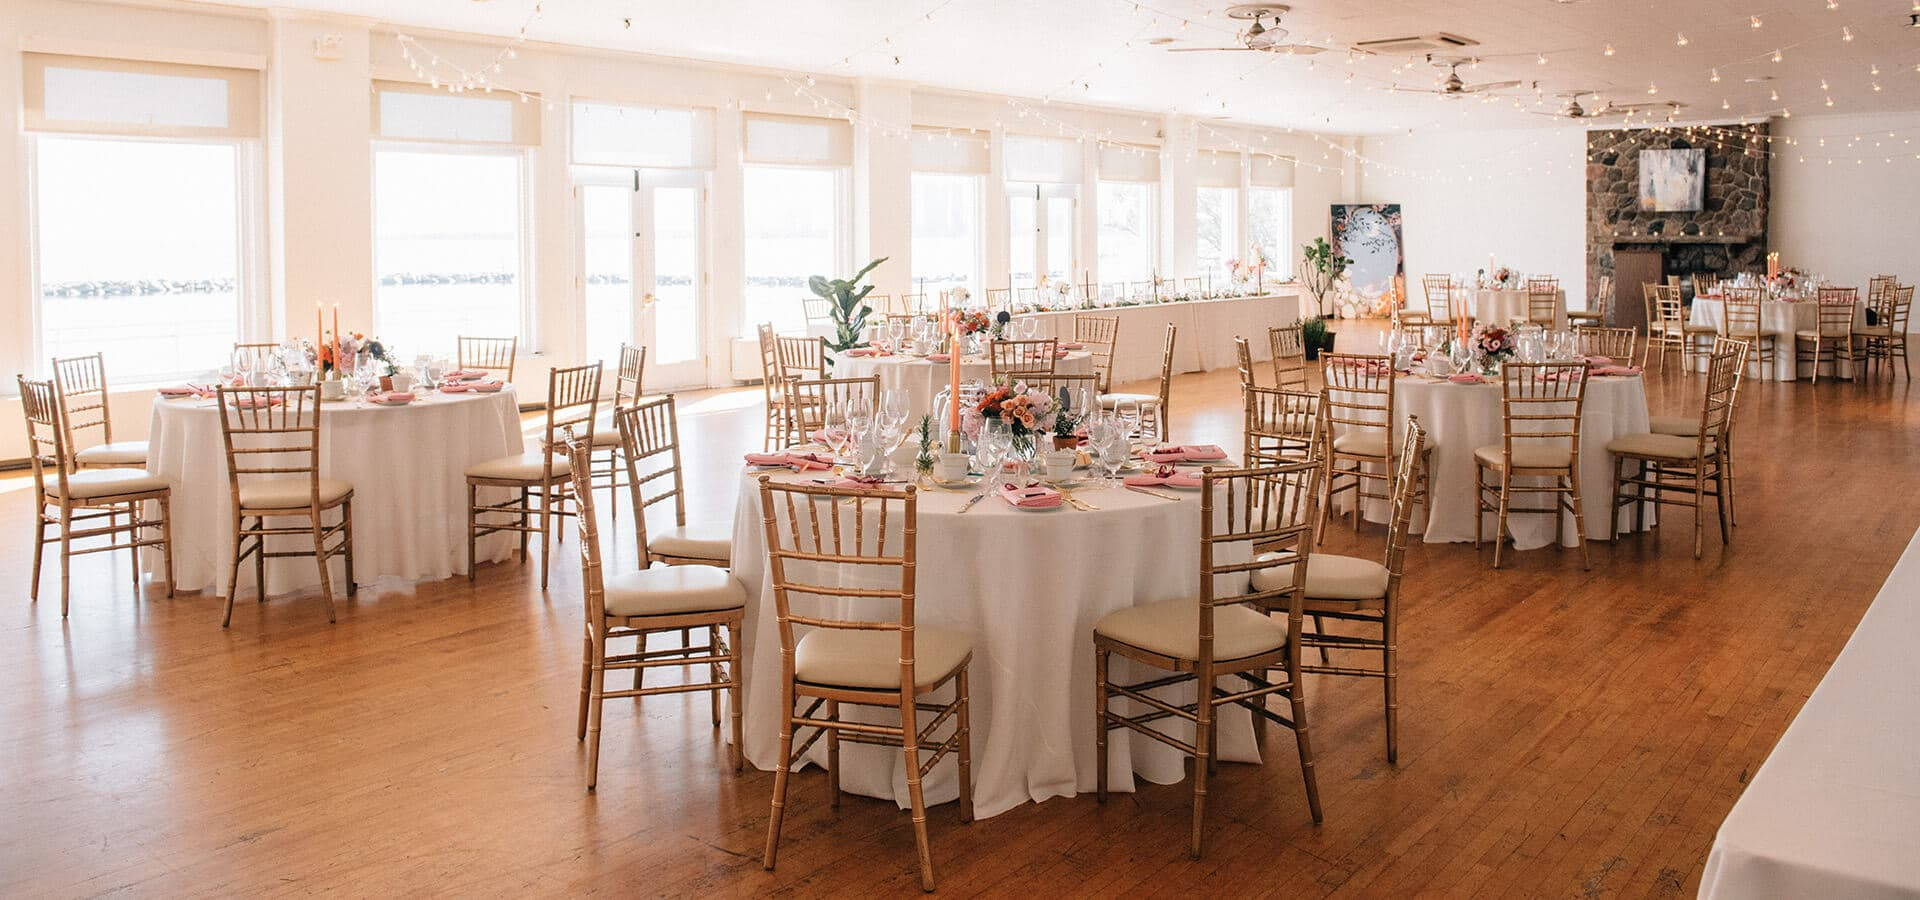 Hero image for Margo and Jacob's Sweet Wedding at The Henley Room